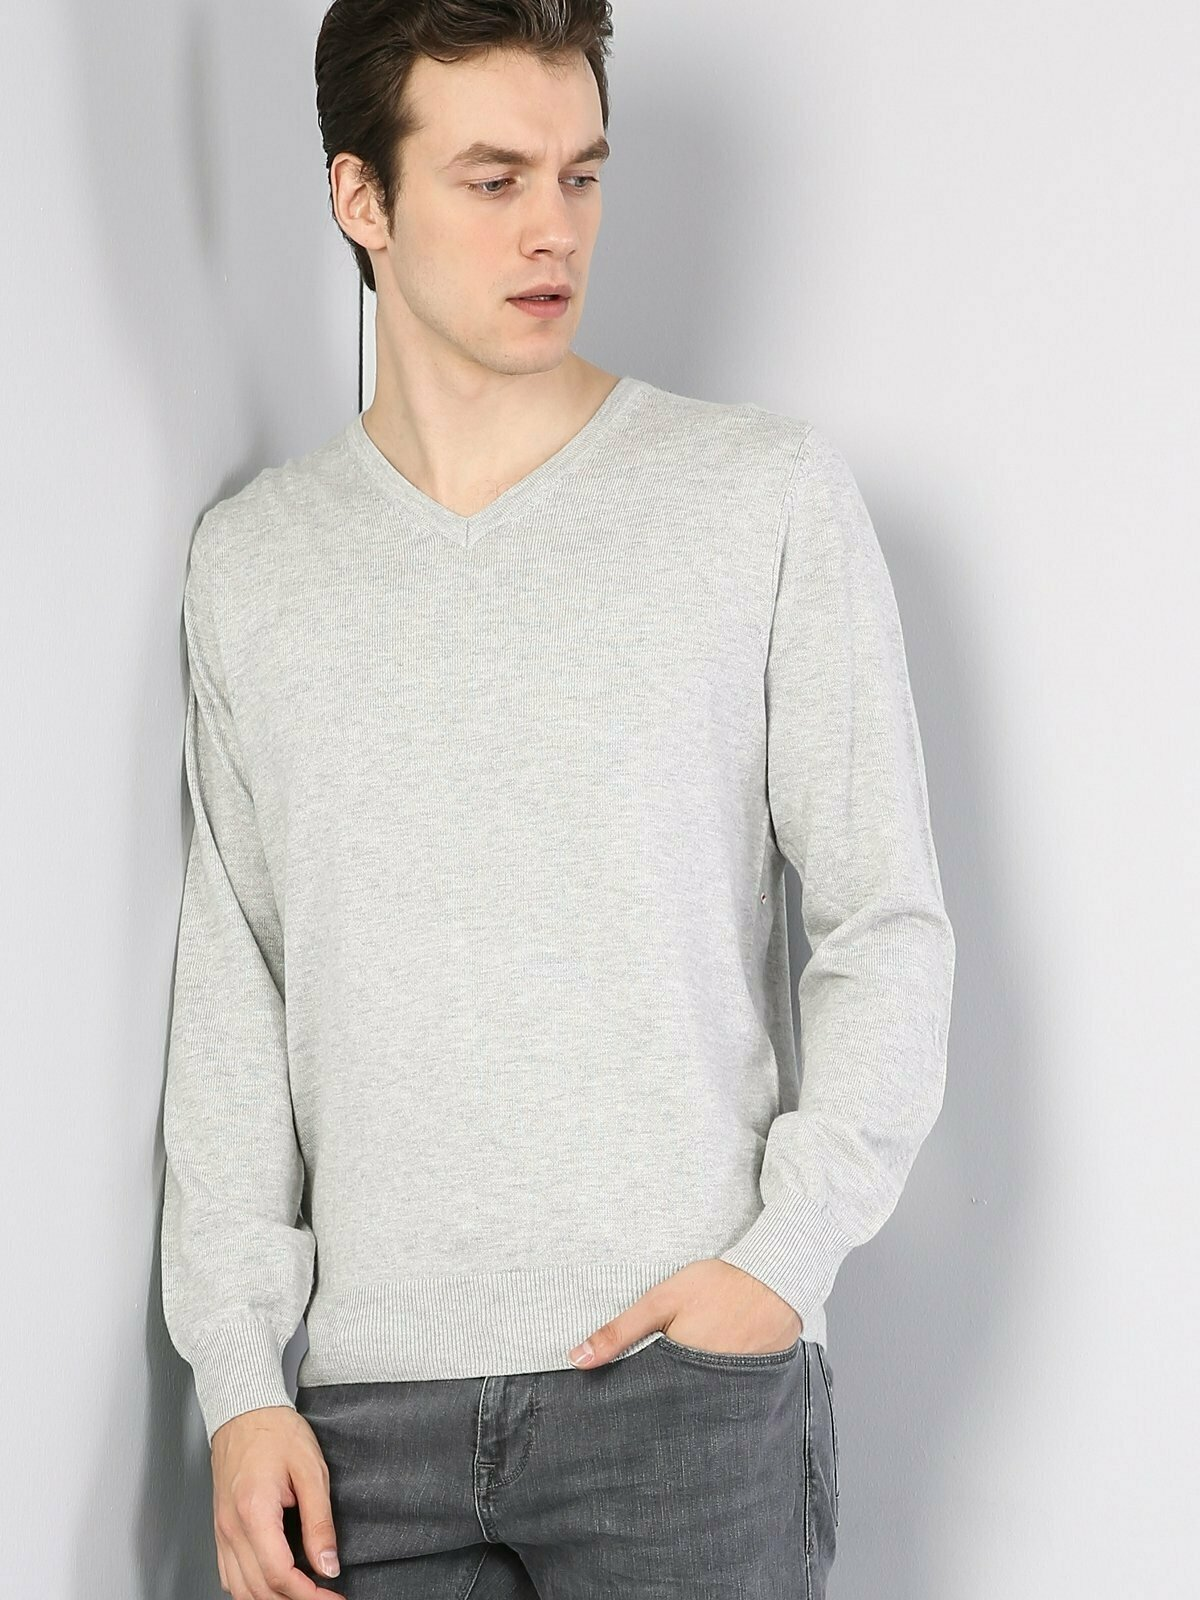 Colins Men Regular Fit Grey Heather SweatersMen's sweater fashion sweater outerwear,CL1023230